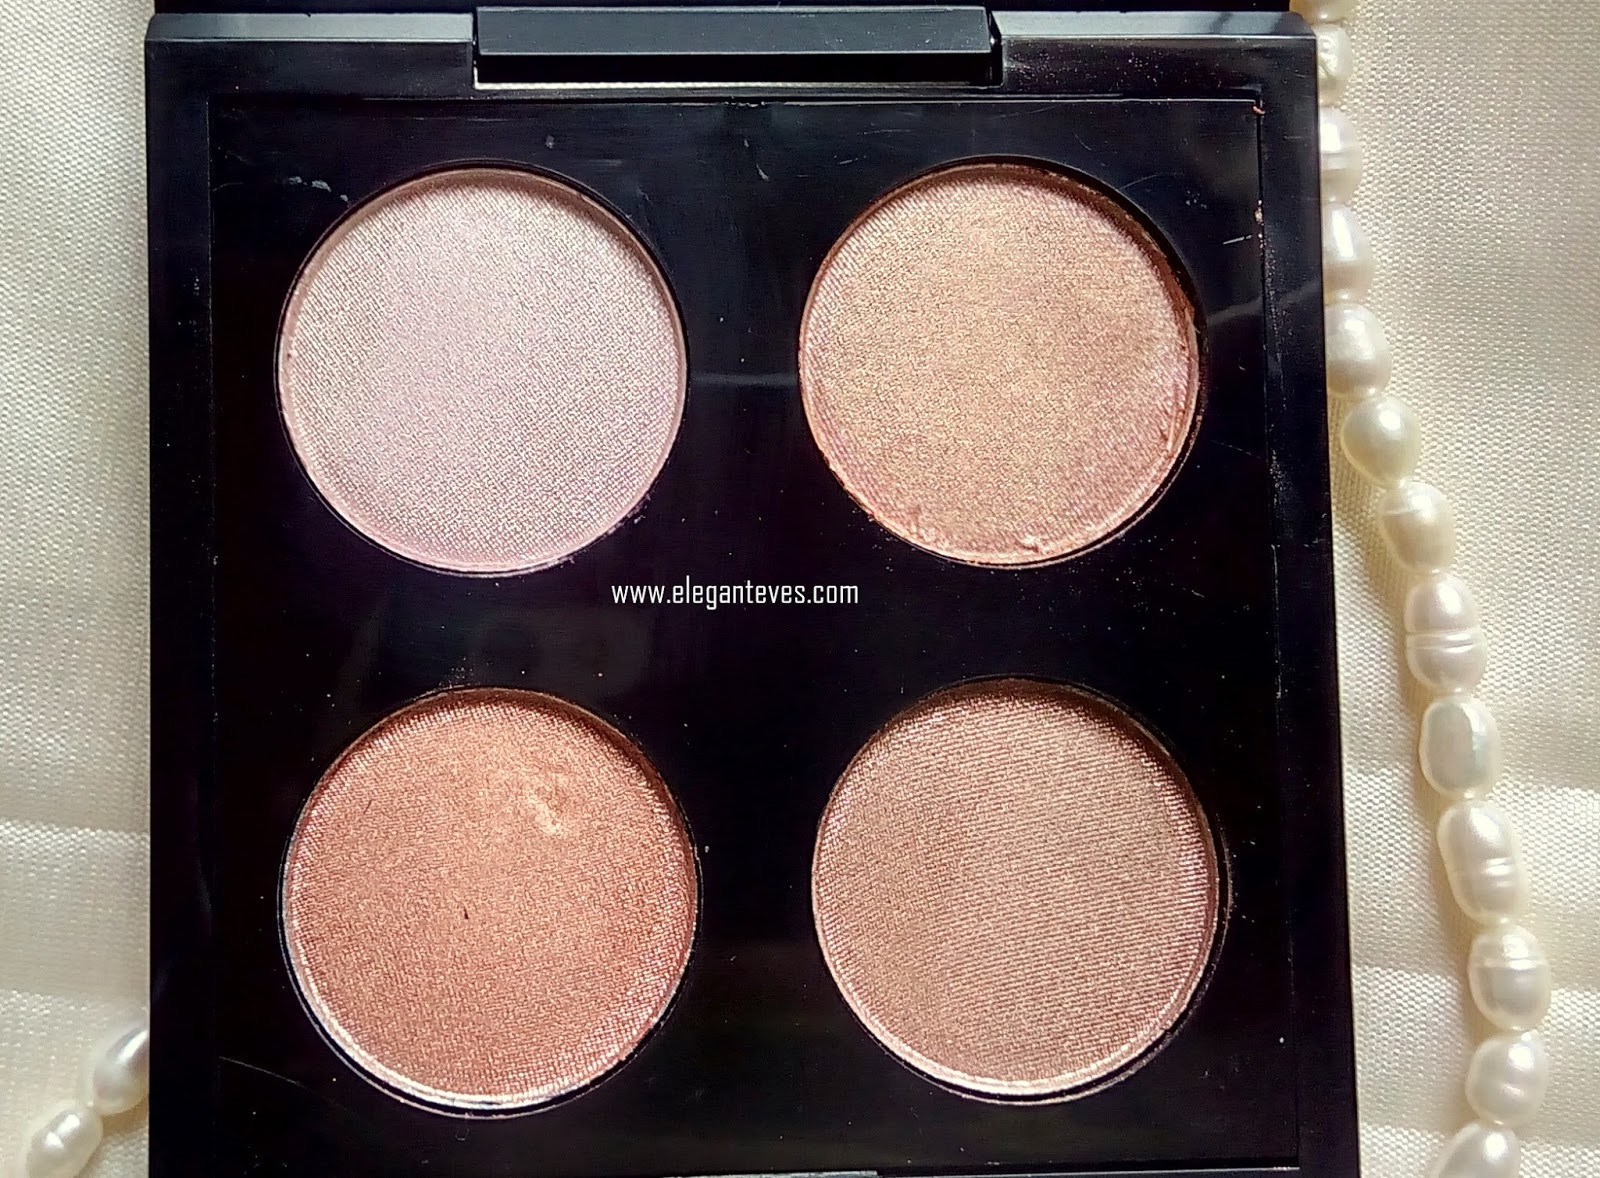 Review/Swatches/Ingredients of Fake MAC Spring Color Forecast-4 ...